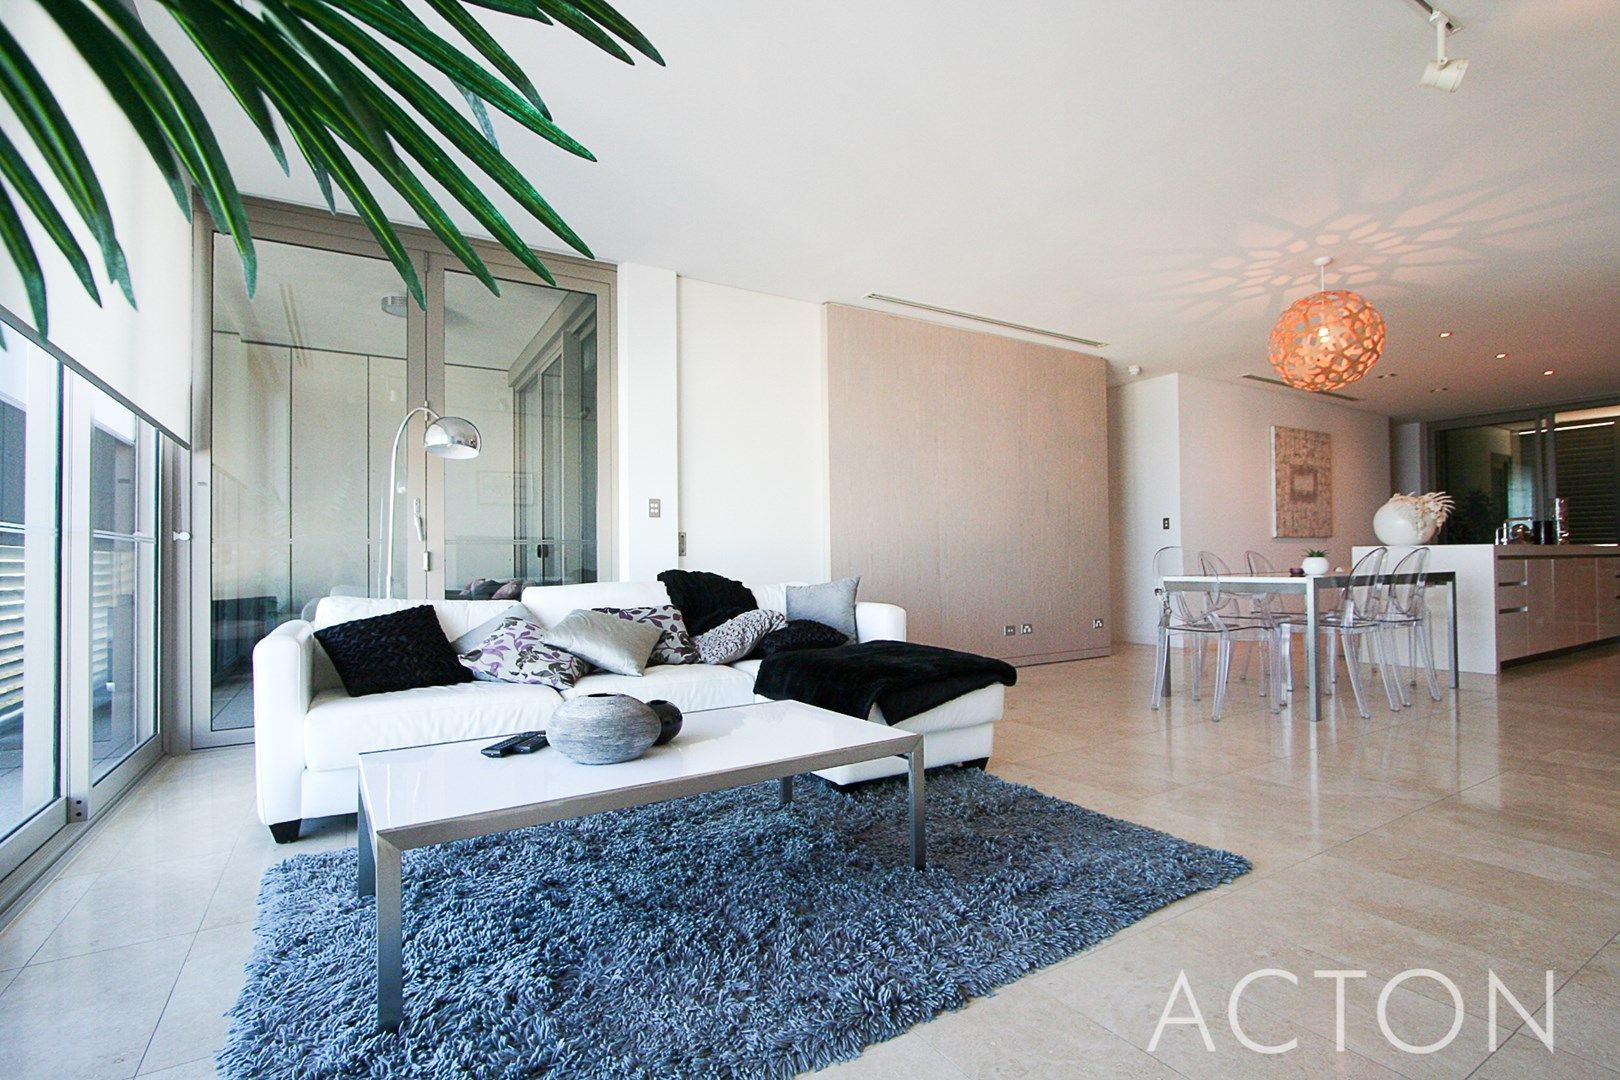 15/21 Ocean Drive, North Coogee WA 6163, Image 0